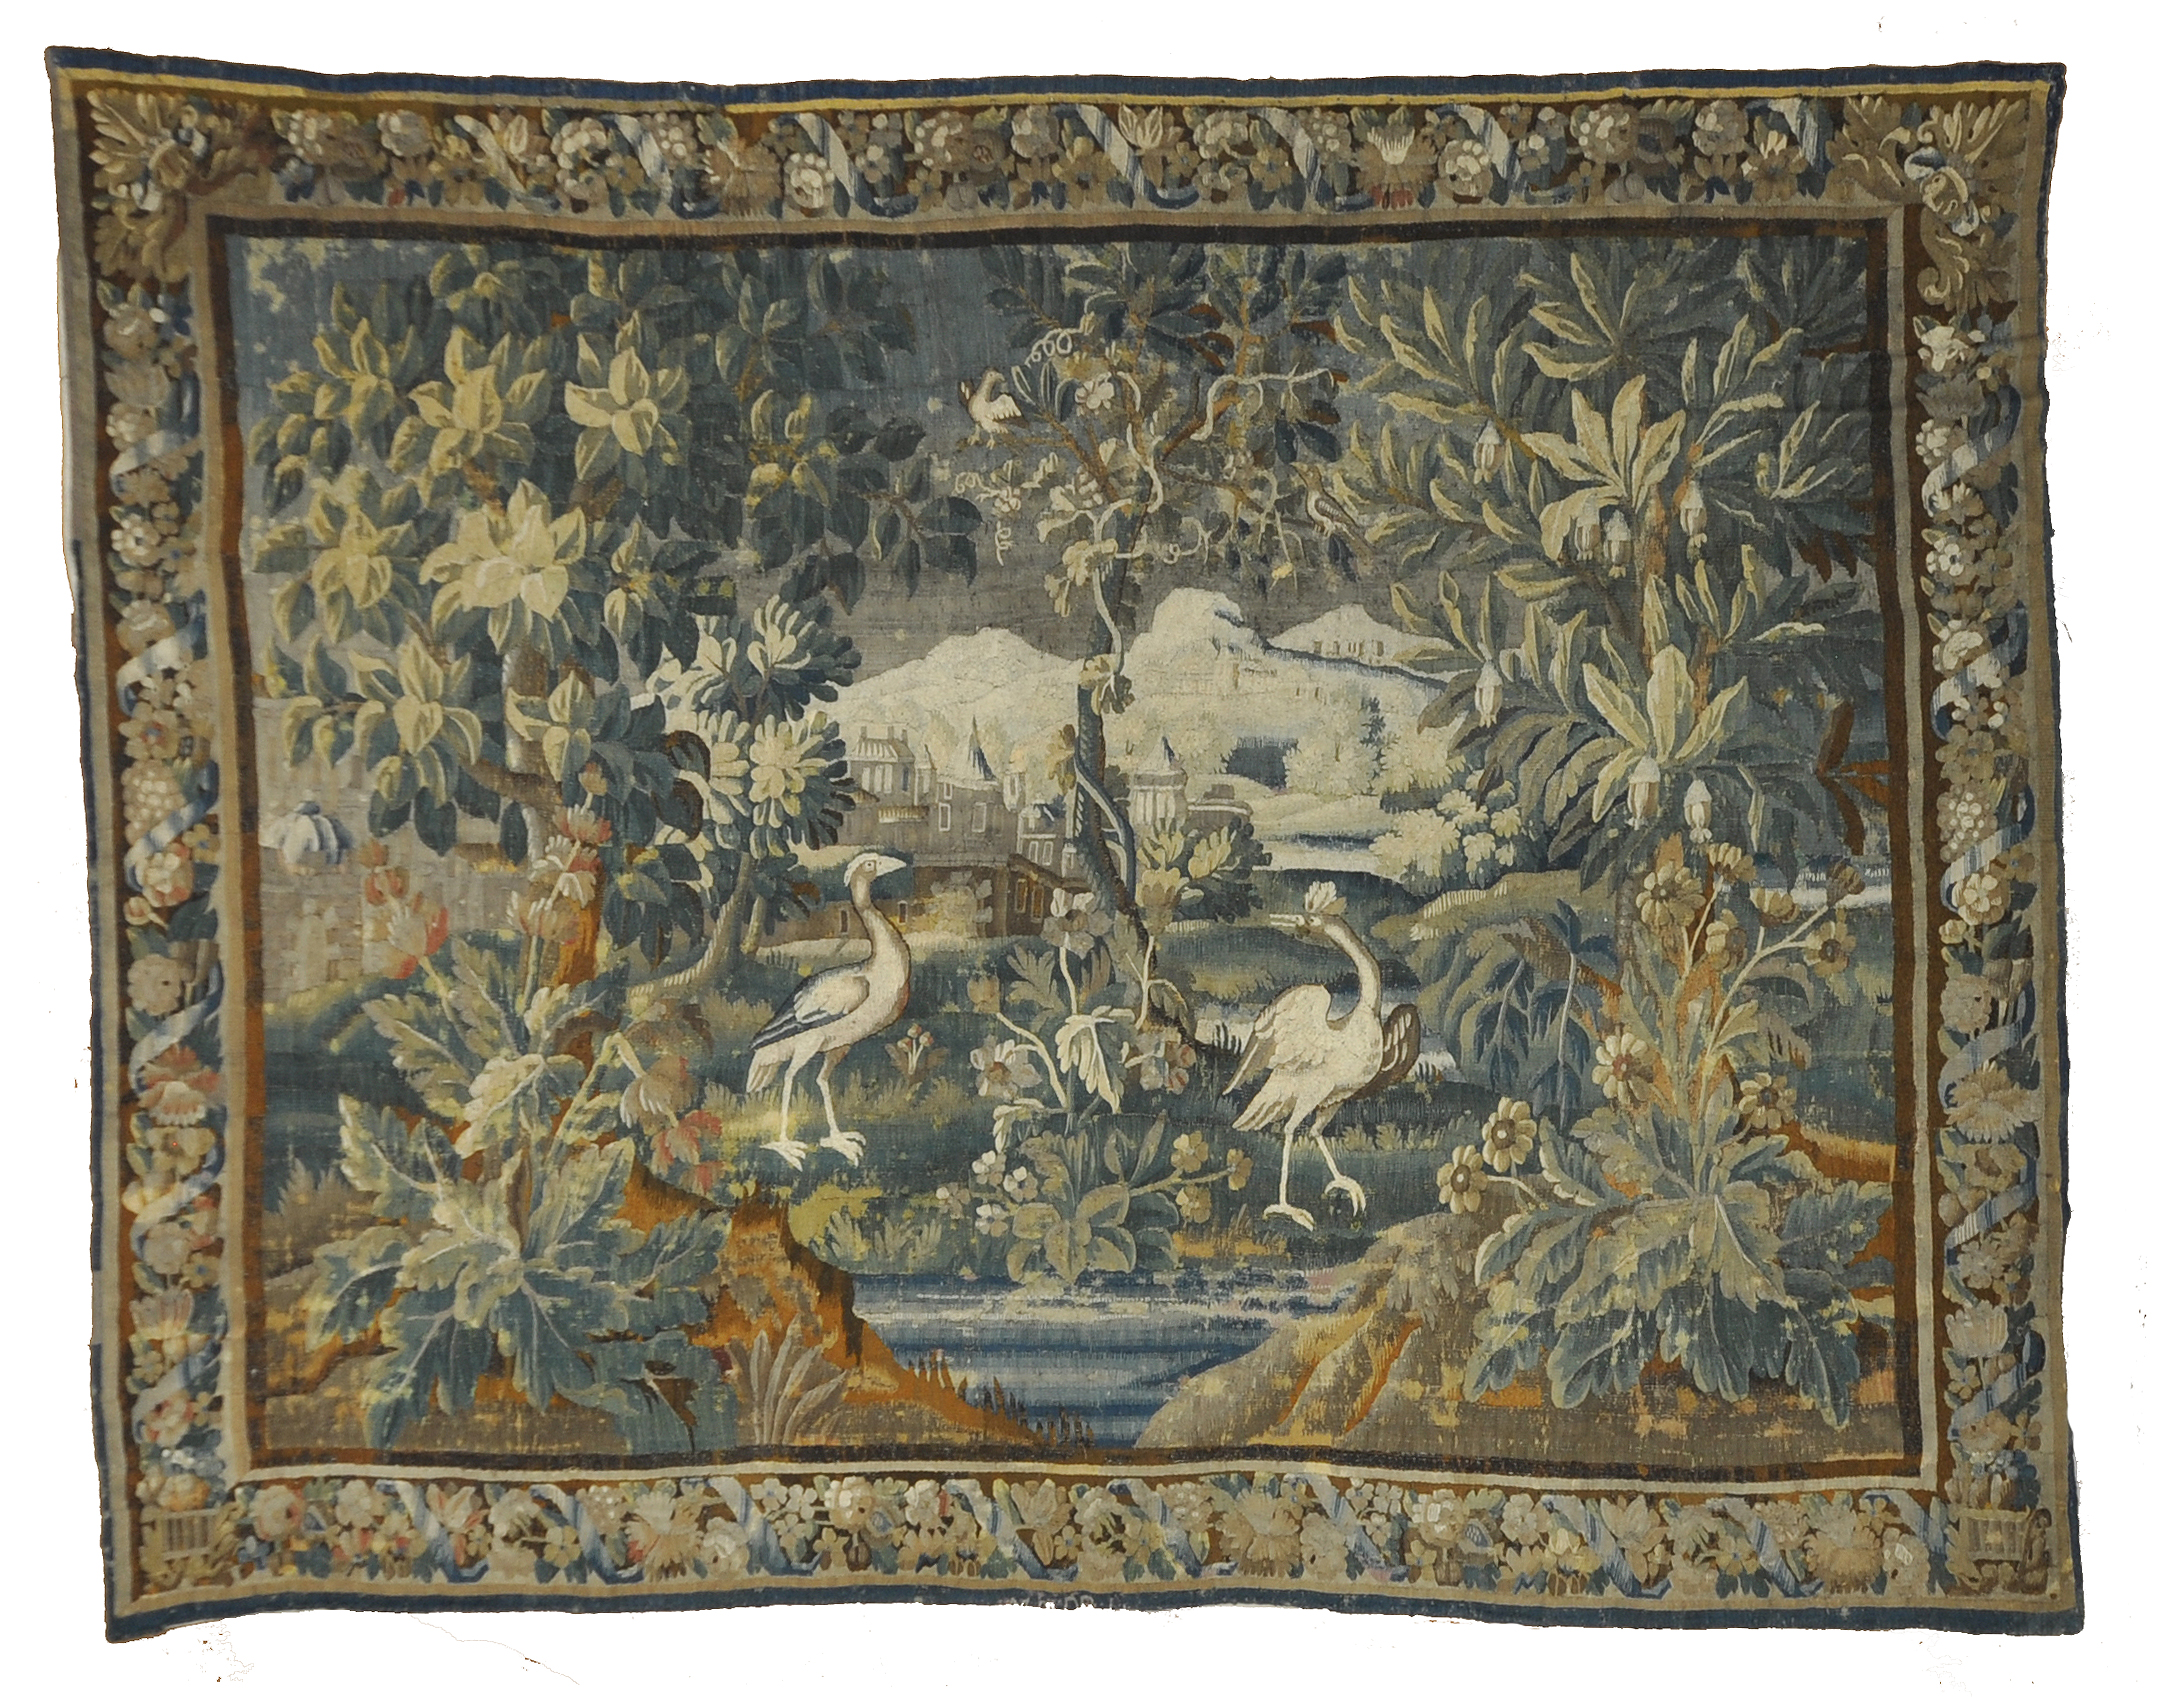 17th Century Flemish Tapestry 17th Century Flemish Tapestry hand made from natural wool. Featuring unique design and scenery of birds and mother nature. 9'1 x 11'6